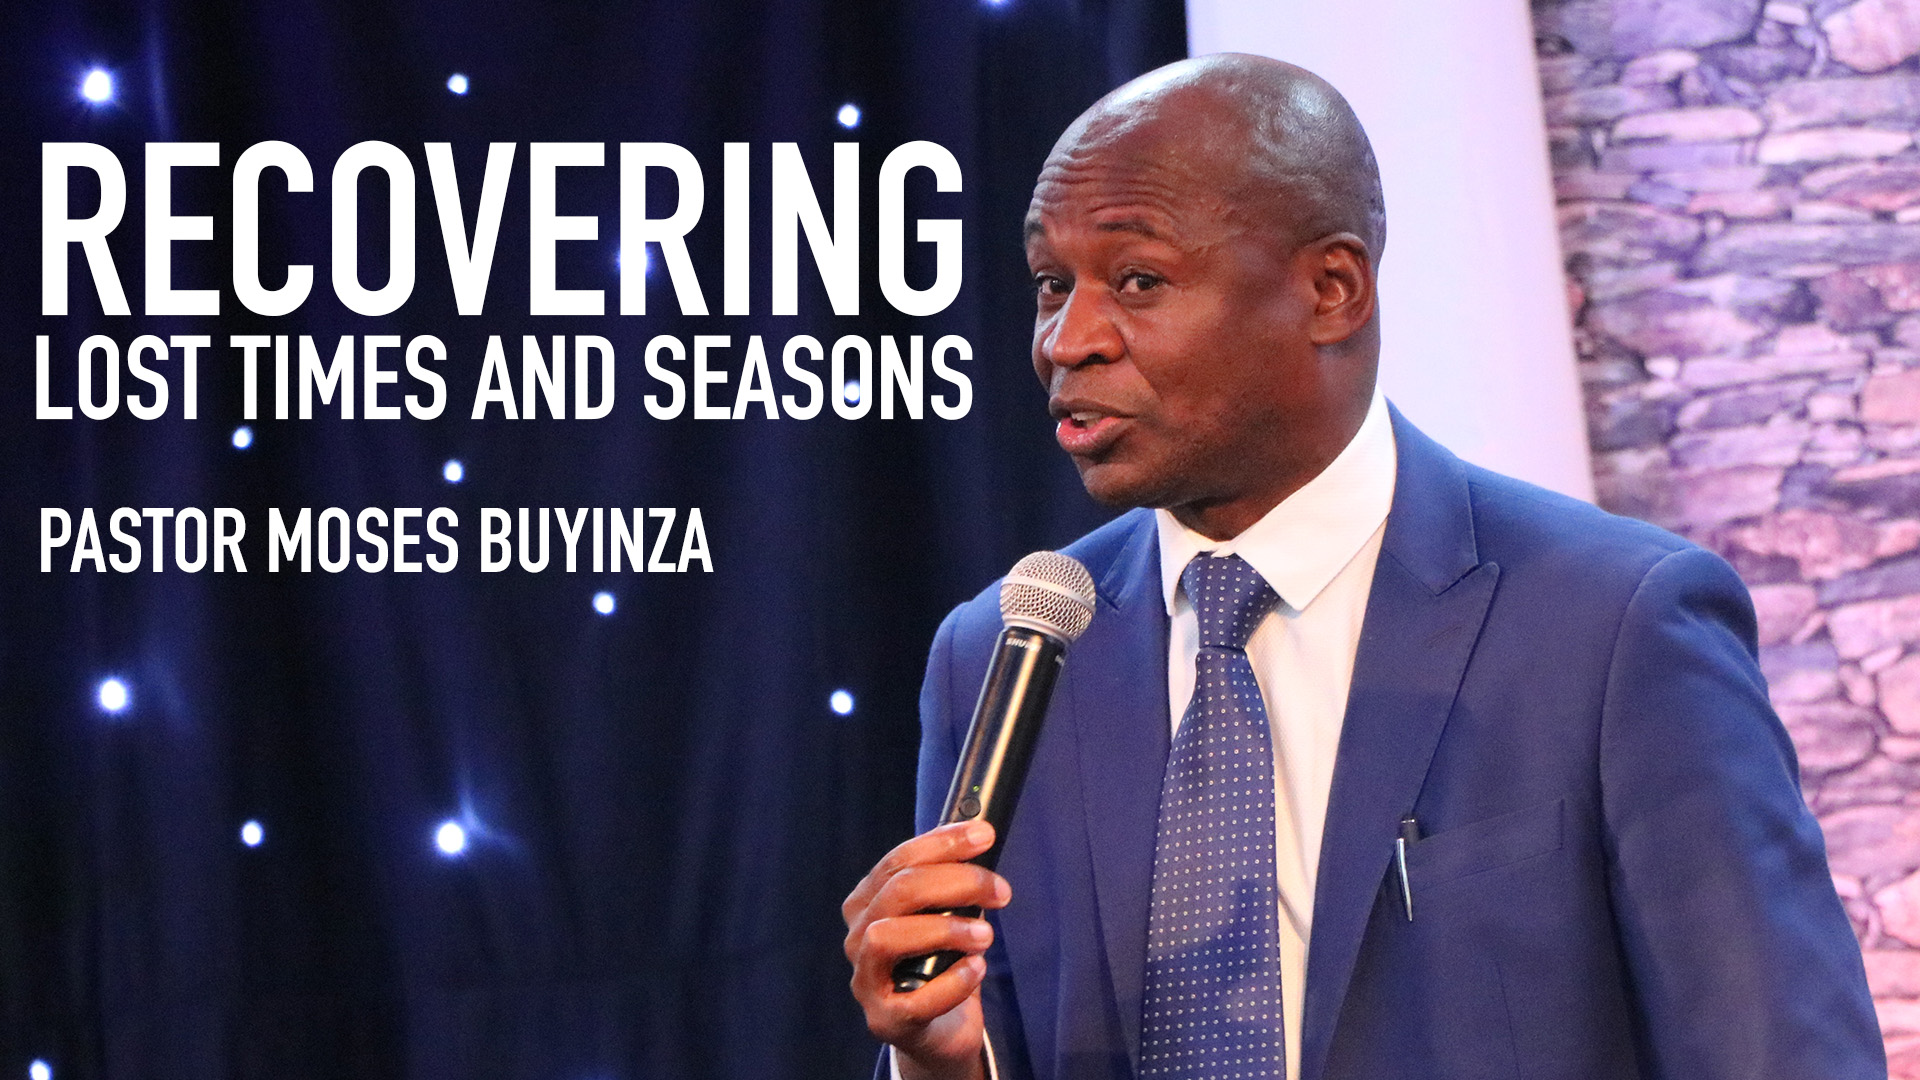 RECOVERING LOST TIMES AND SEASONS